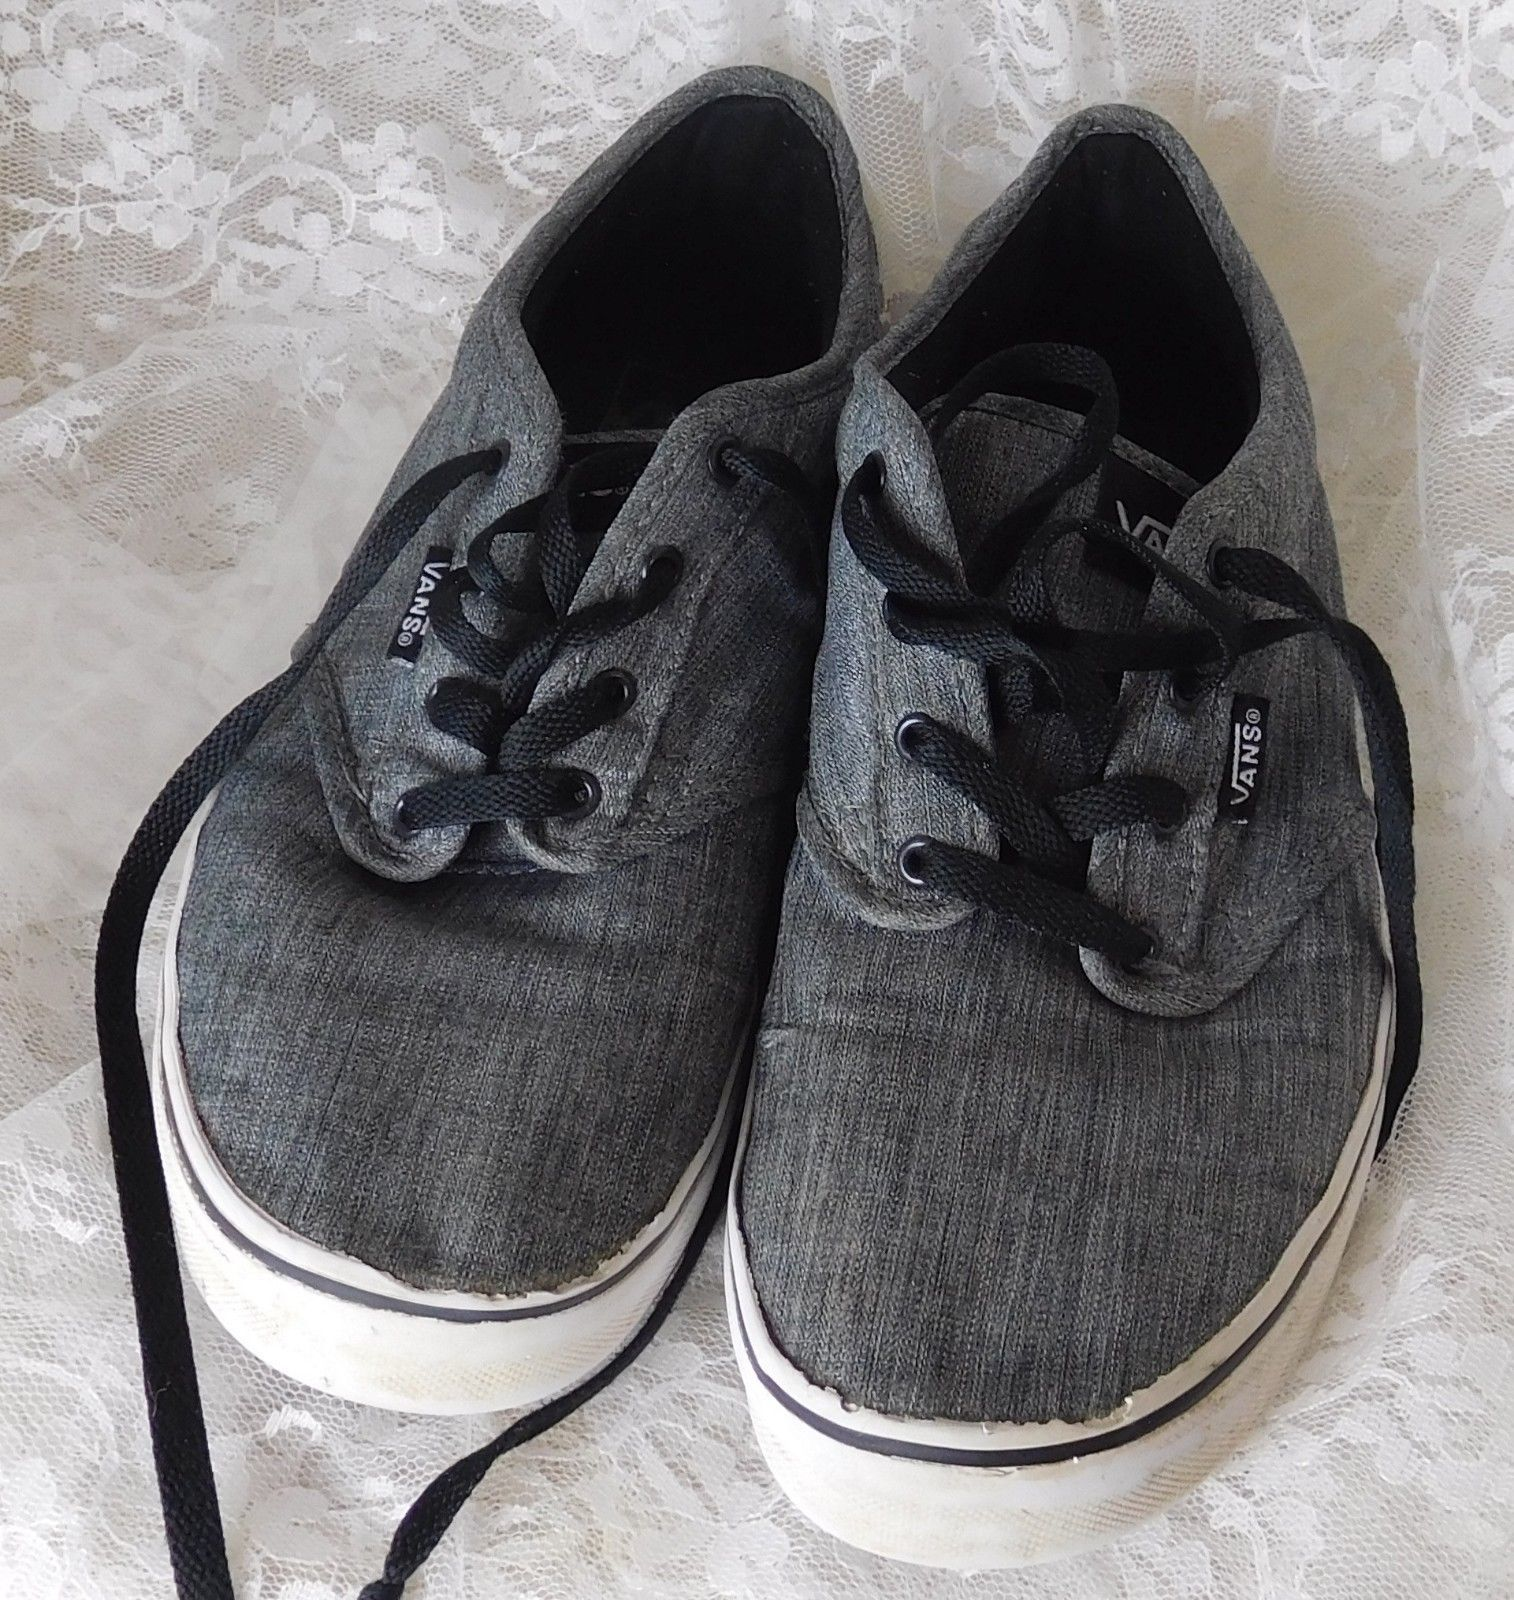 9738109edee4 Vans Off The Wall Men s Sneakers Size 7 Gray and 50 similar items